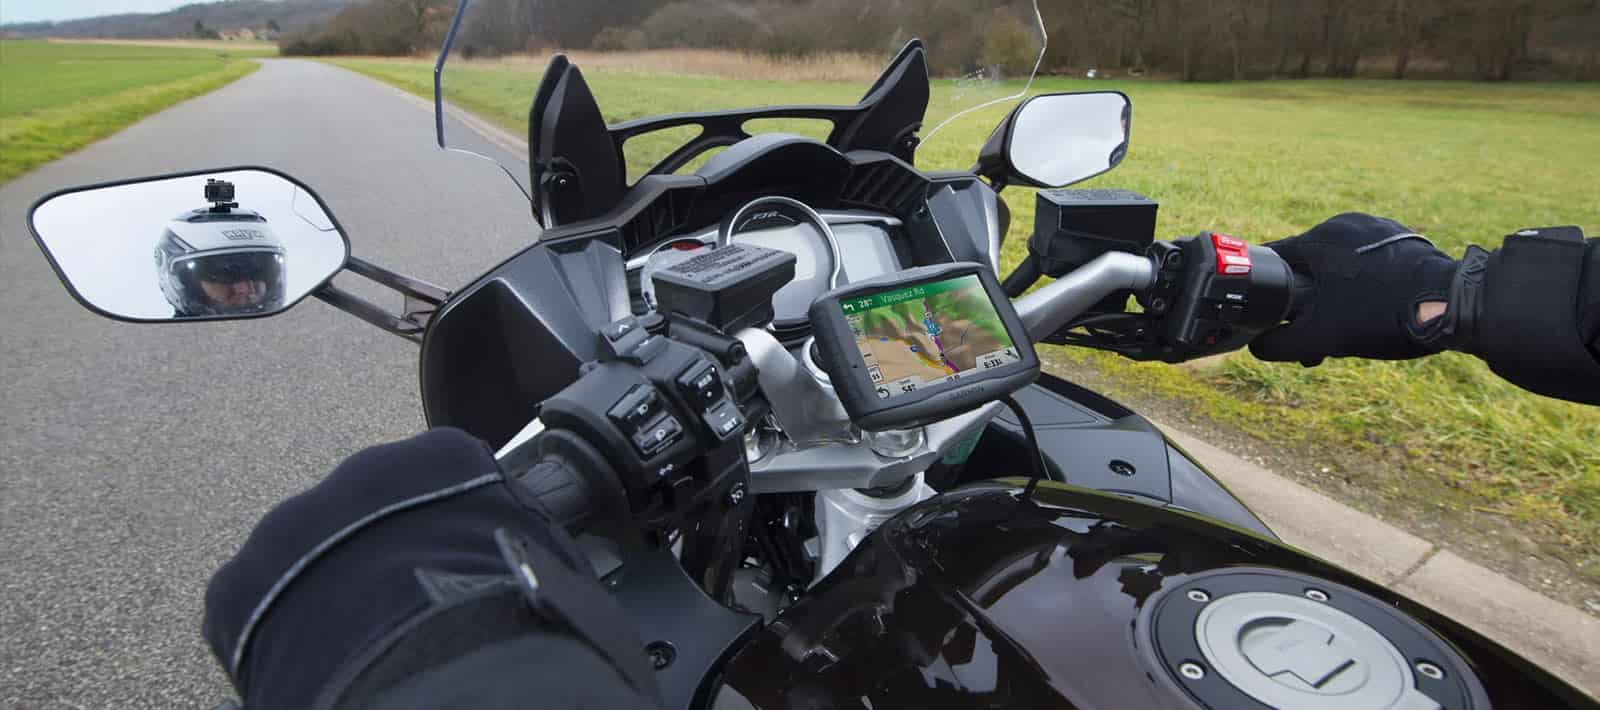 motorcycle gps in use